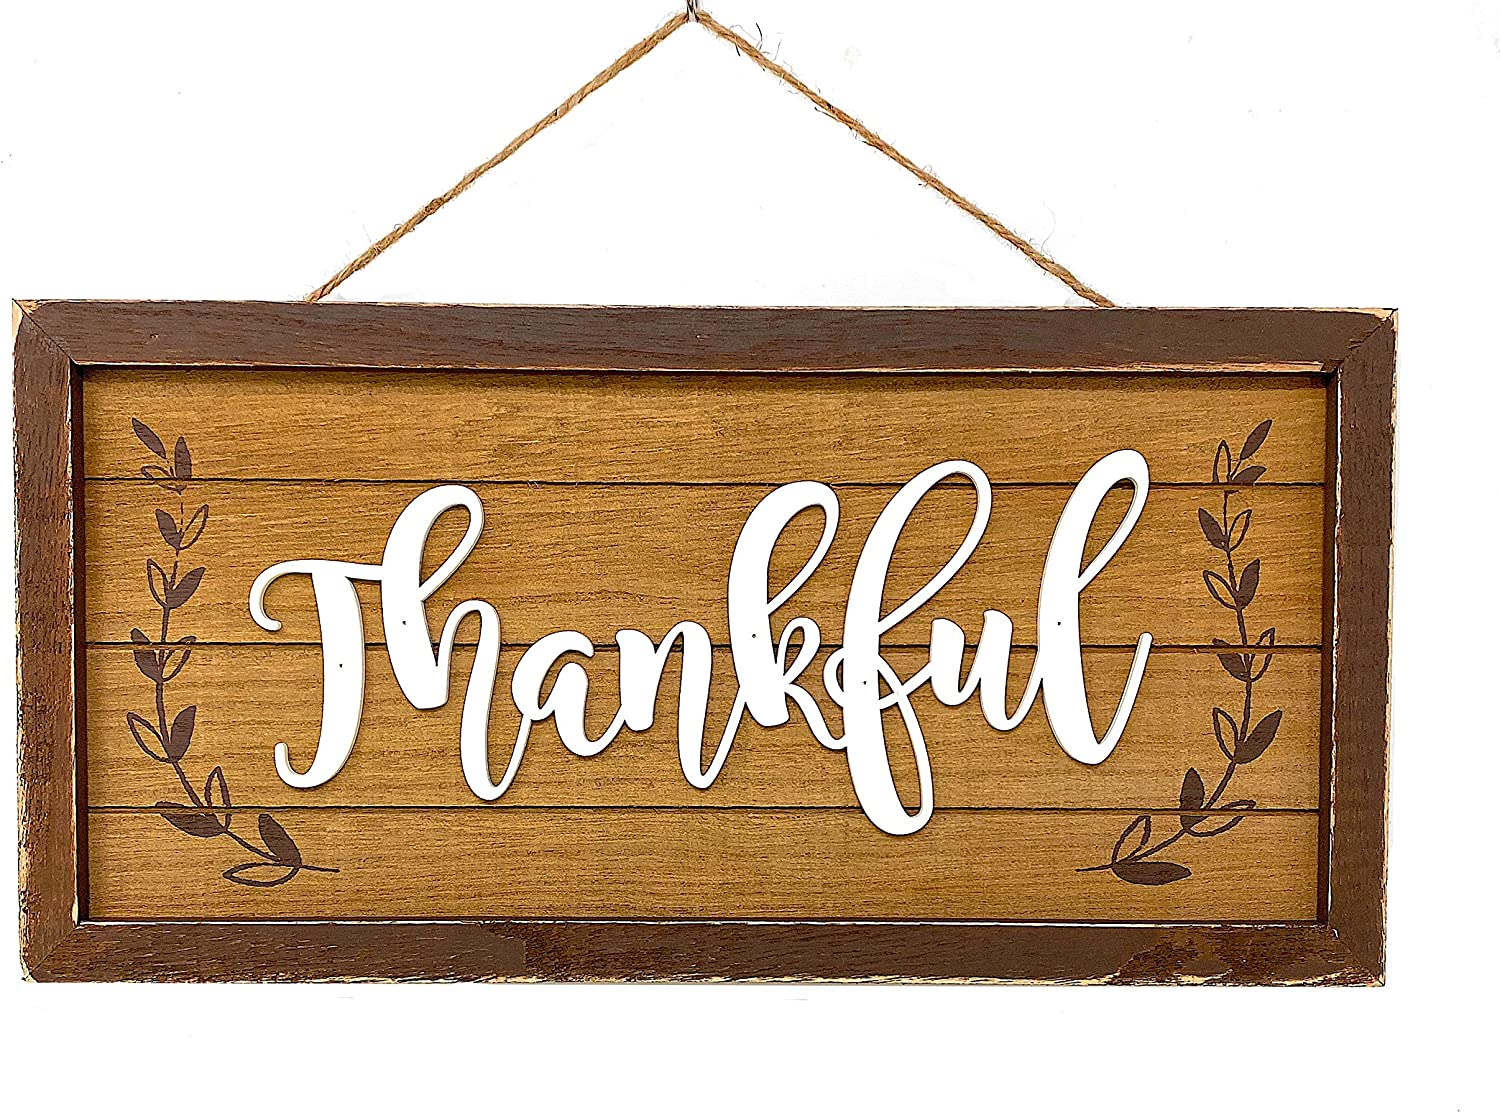 "This is an image of a wooden door signage with the word ""Thankful"" written in calligraphy style."